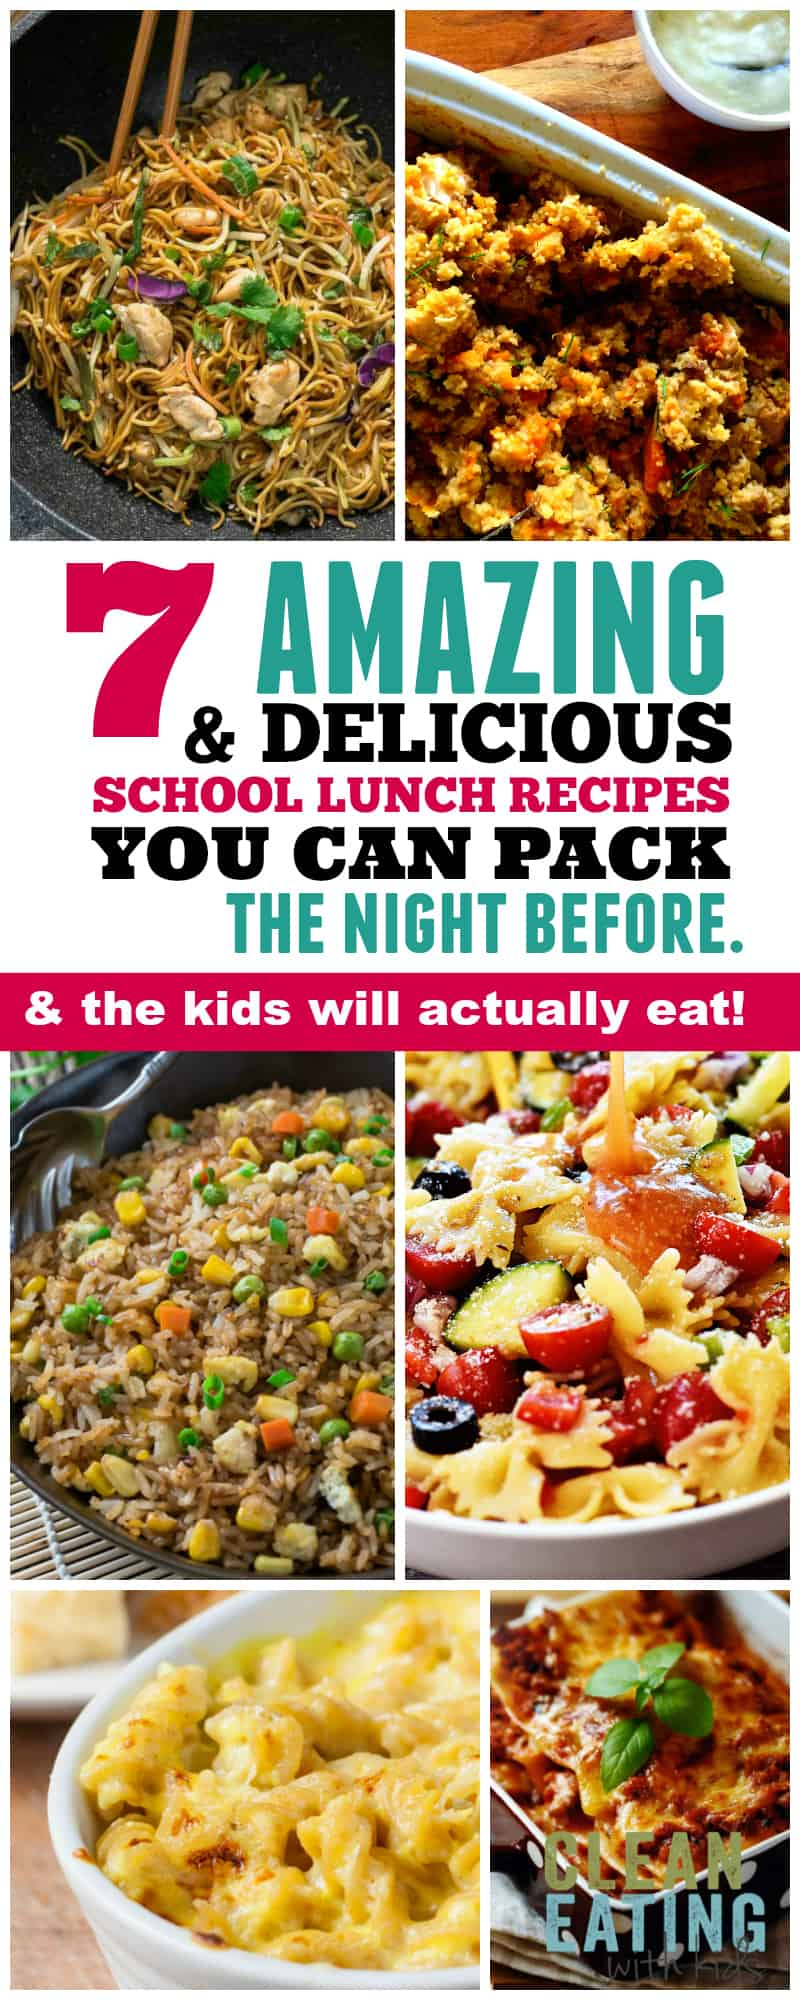 Want To Pack A Lunch Your Kid Will Actually Eat? These Back To School Lunch Ideas that you can pack the night before!